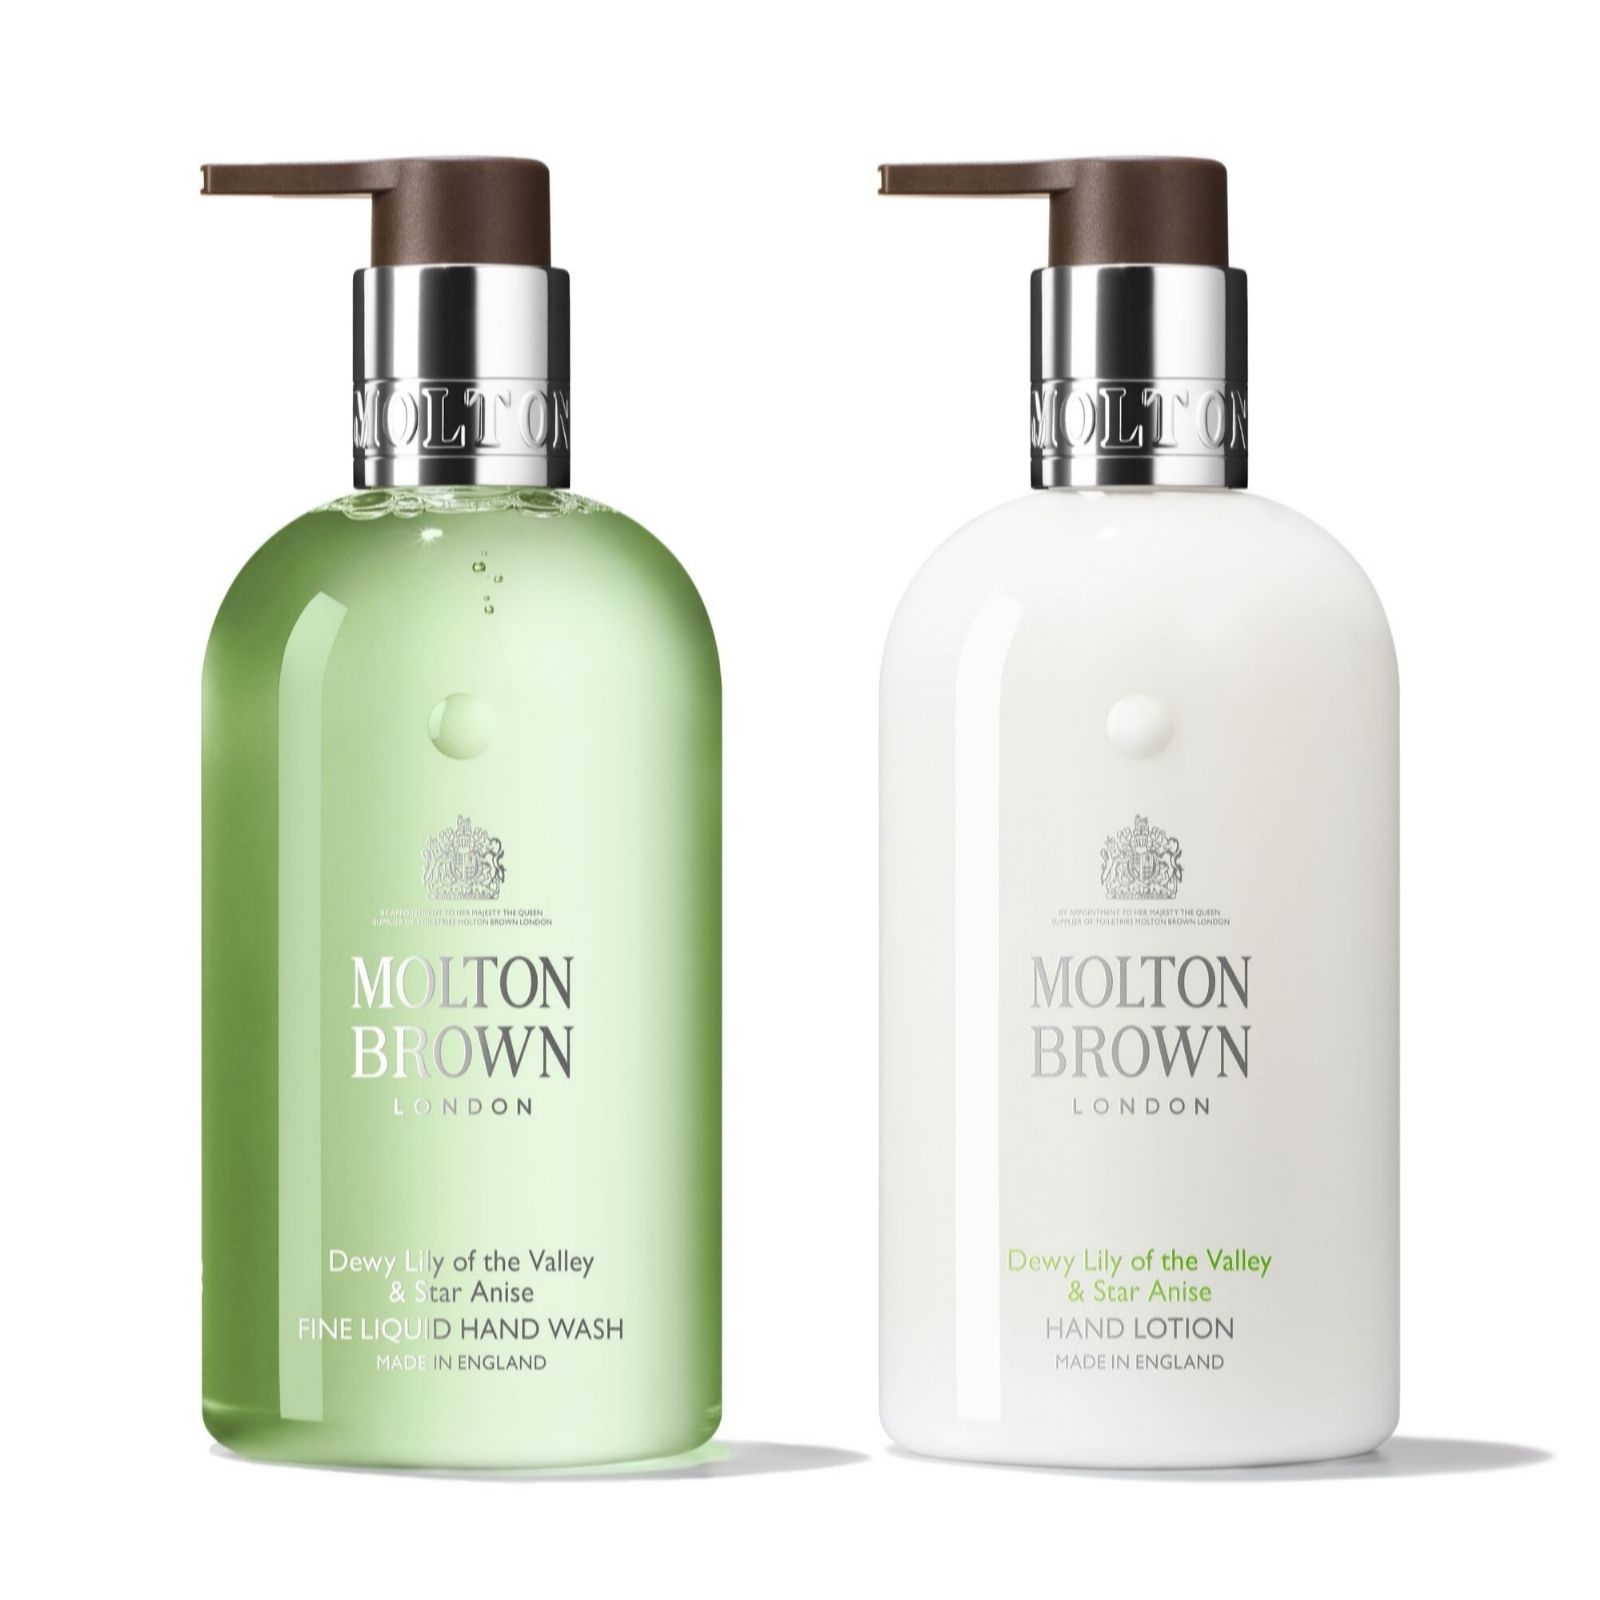 37c77747724ca Molton Brown Dewy Lily of the Valley   Star Anise Exquisite Hand Care Duo  300ml - QVC UK